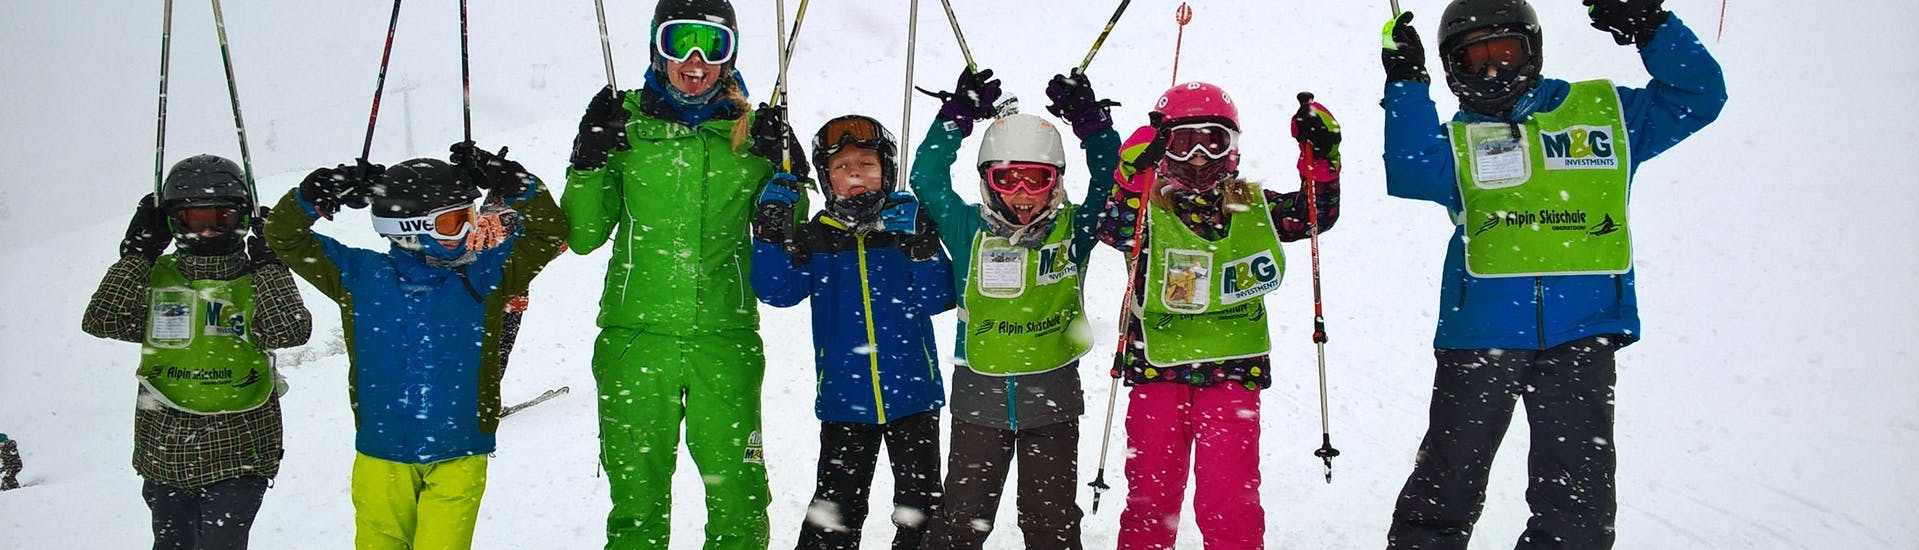 Children are starting the Kids Ski Lessons (7- 8 years) - Advanced with their experienced instructor from the ski school Alpin Skischule Oberstdorf.